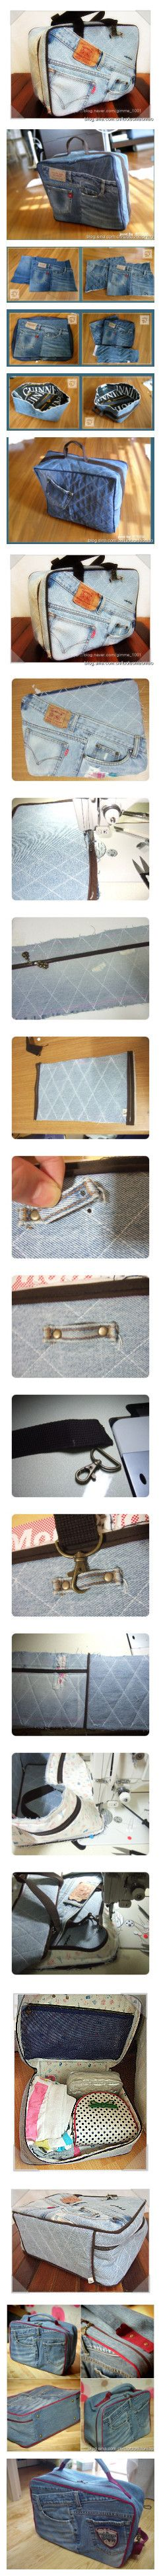 Diy : Creative Sewing idea #diy #crafts   too dang cute!  Thinking of Krissy kickin' up her denim purses a notch.